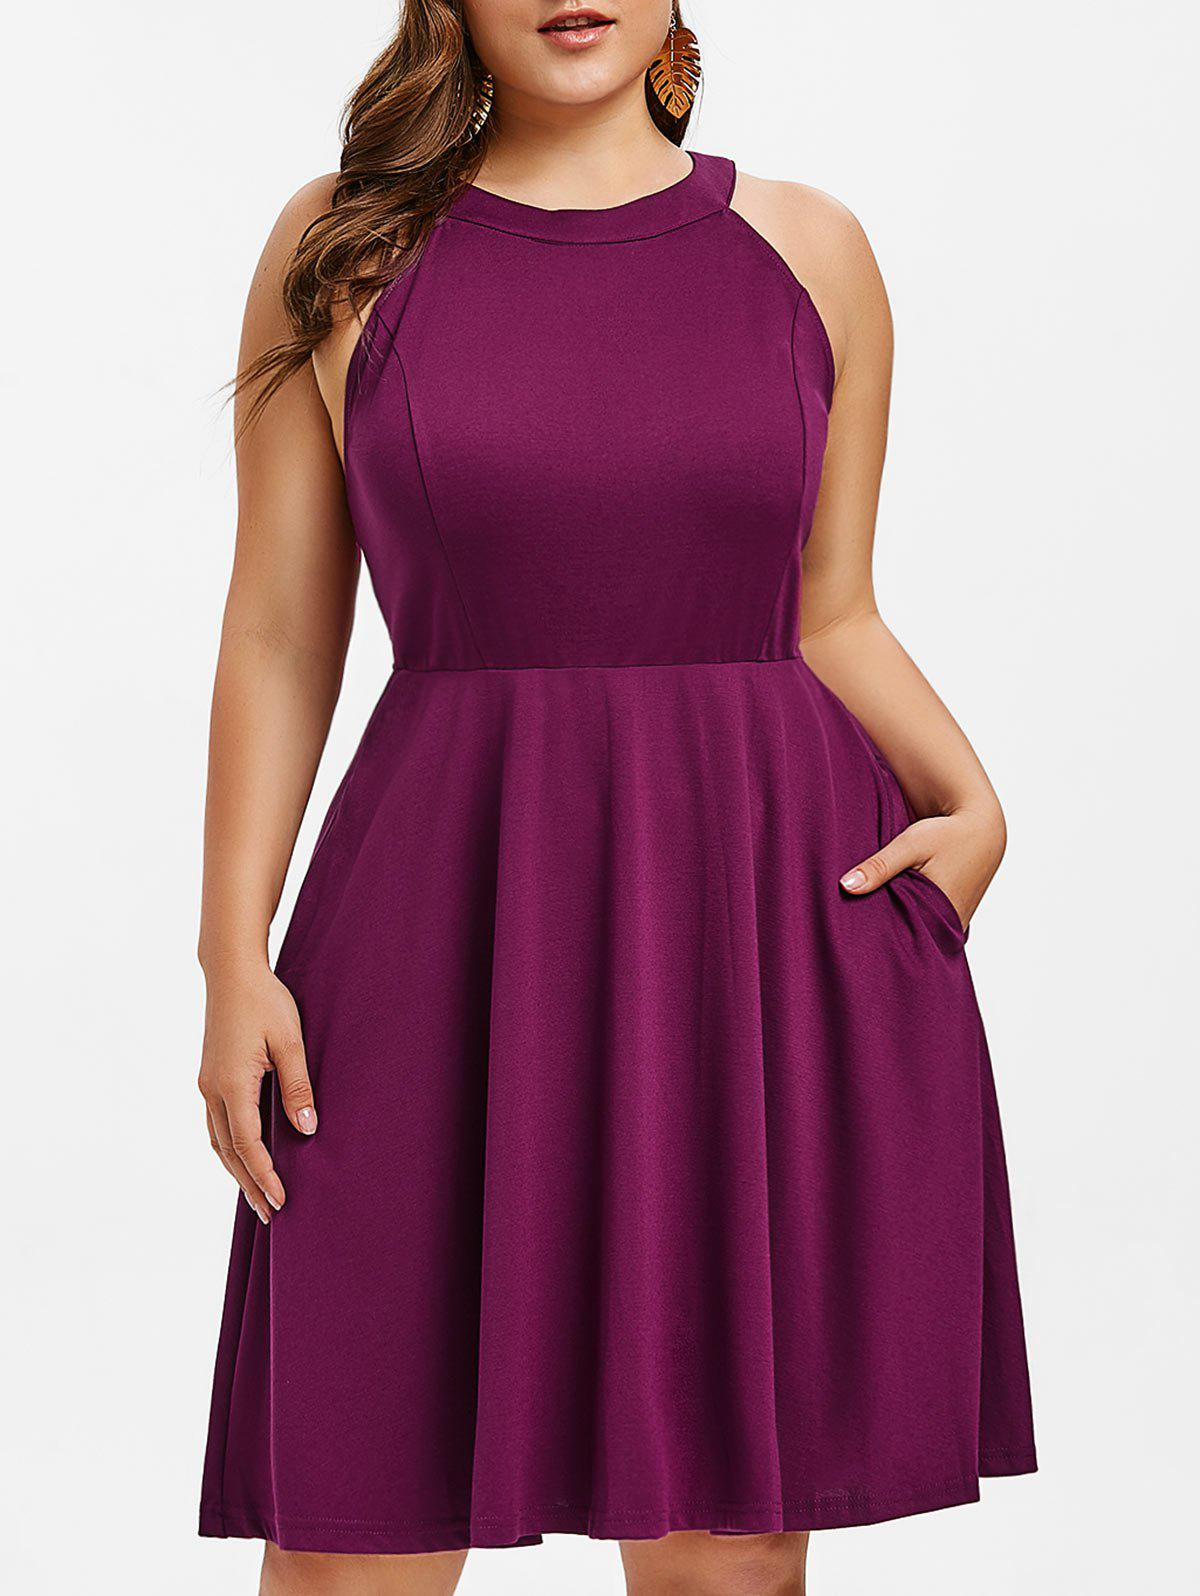 e6bfb7977ad 25% OFF  Round Neck Plus Size Fit And Flare Dress